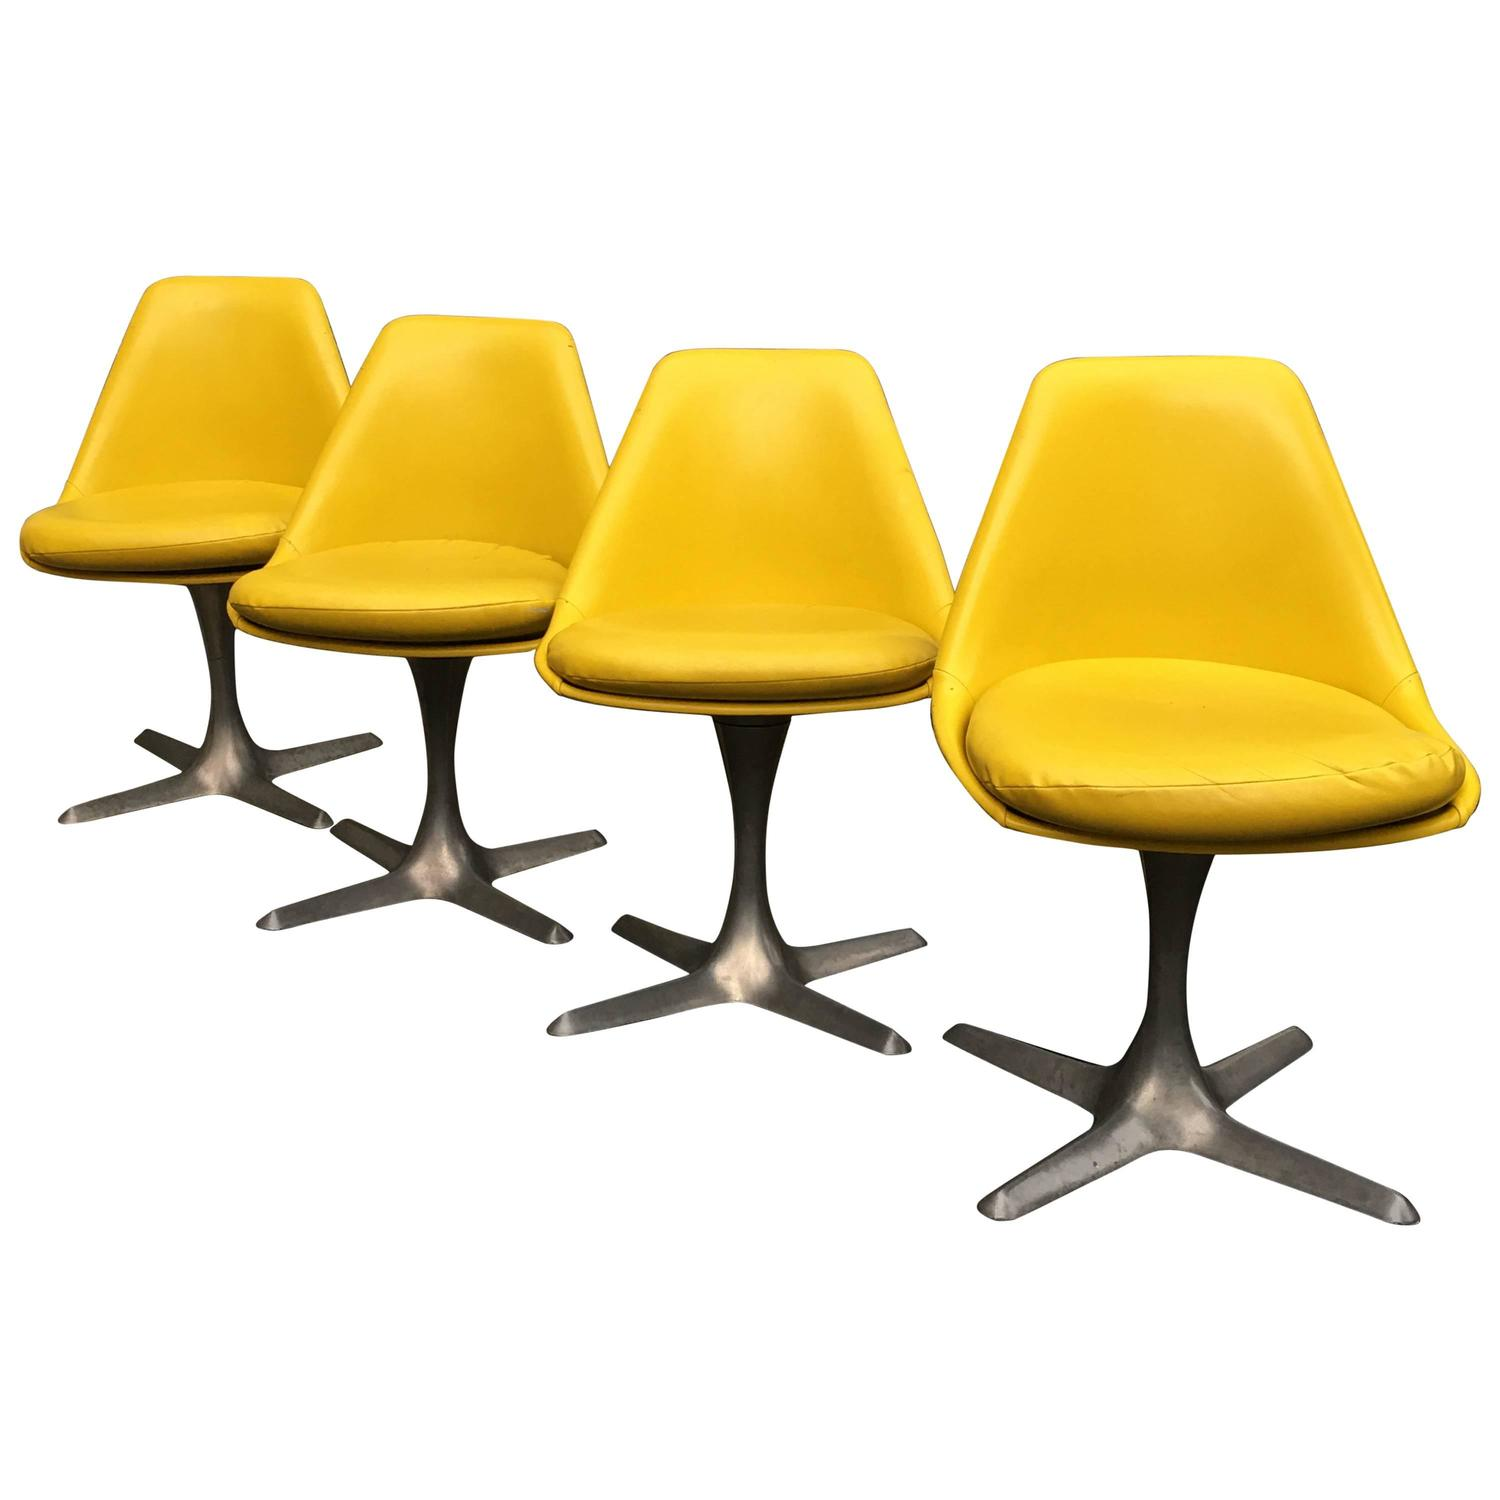 yellow chairs for sale waterproof bean bag chair four knoll dining at 1stdibs